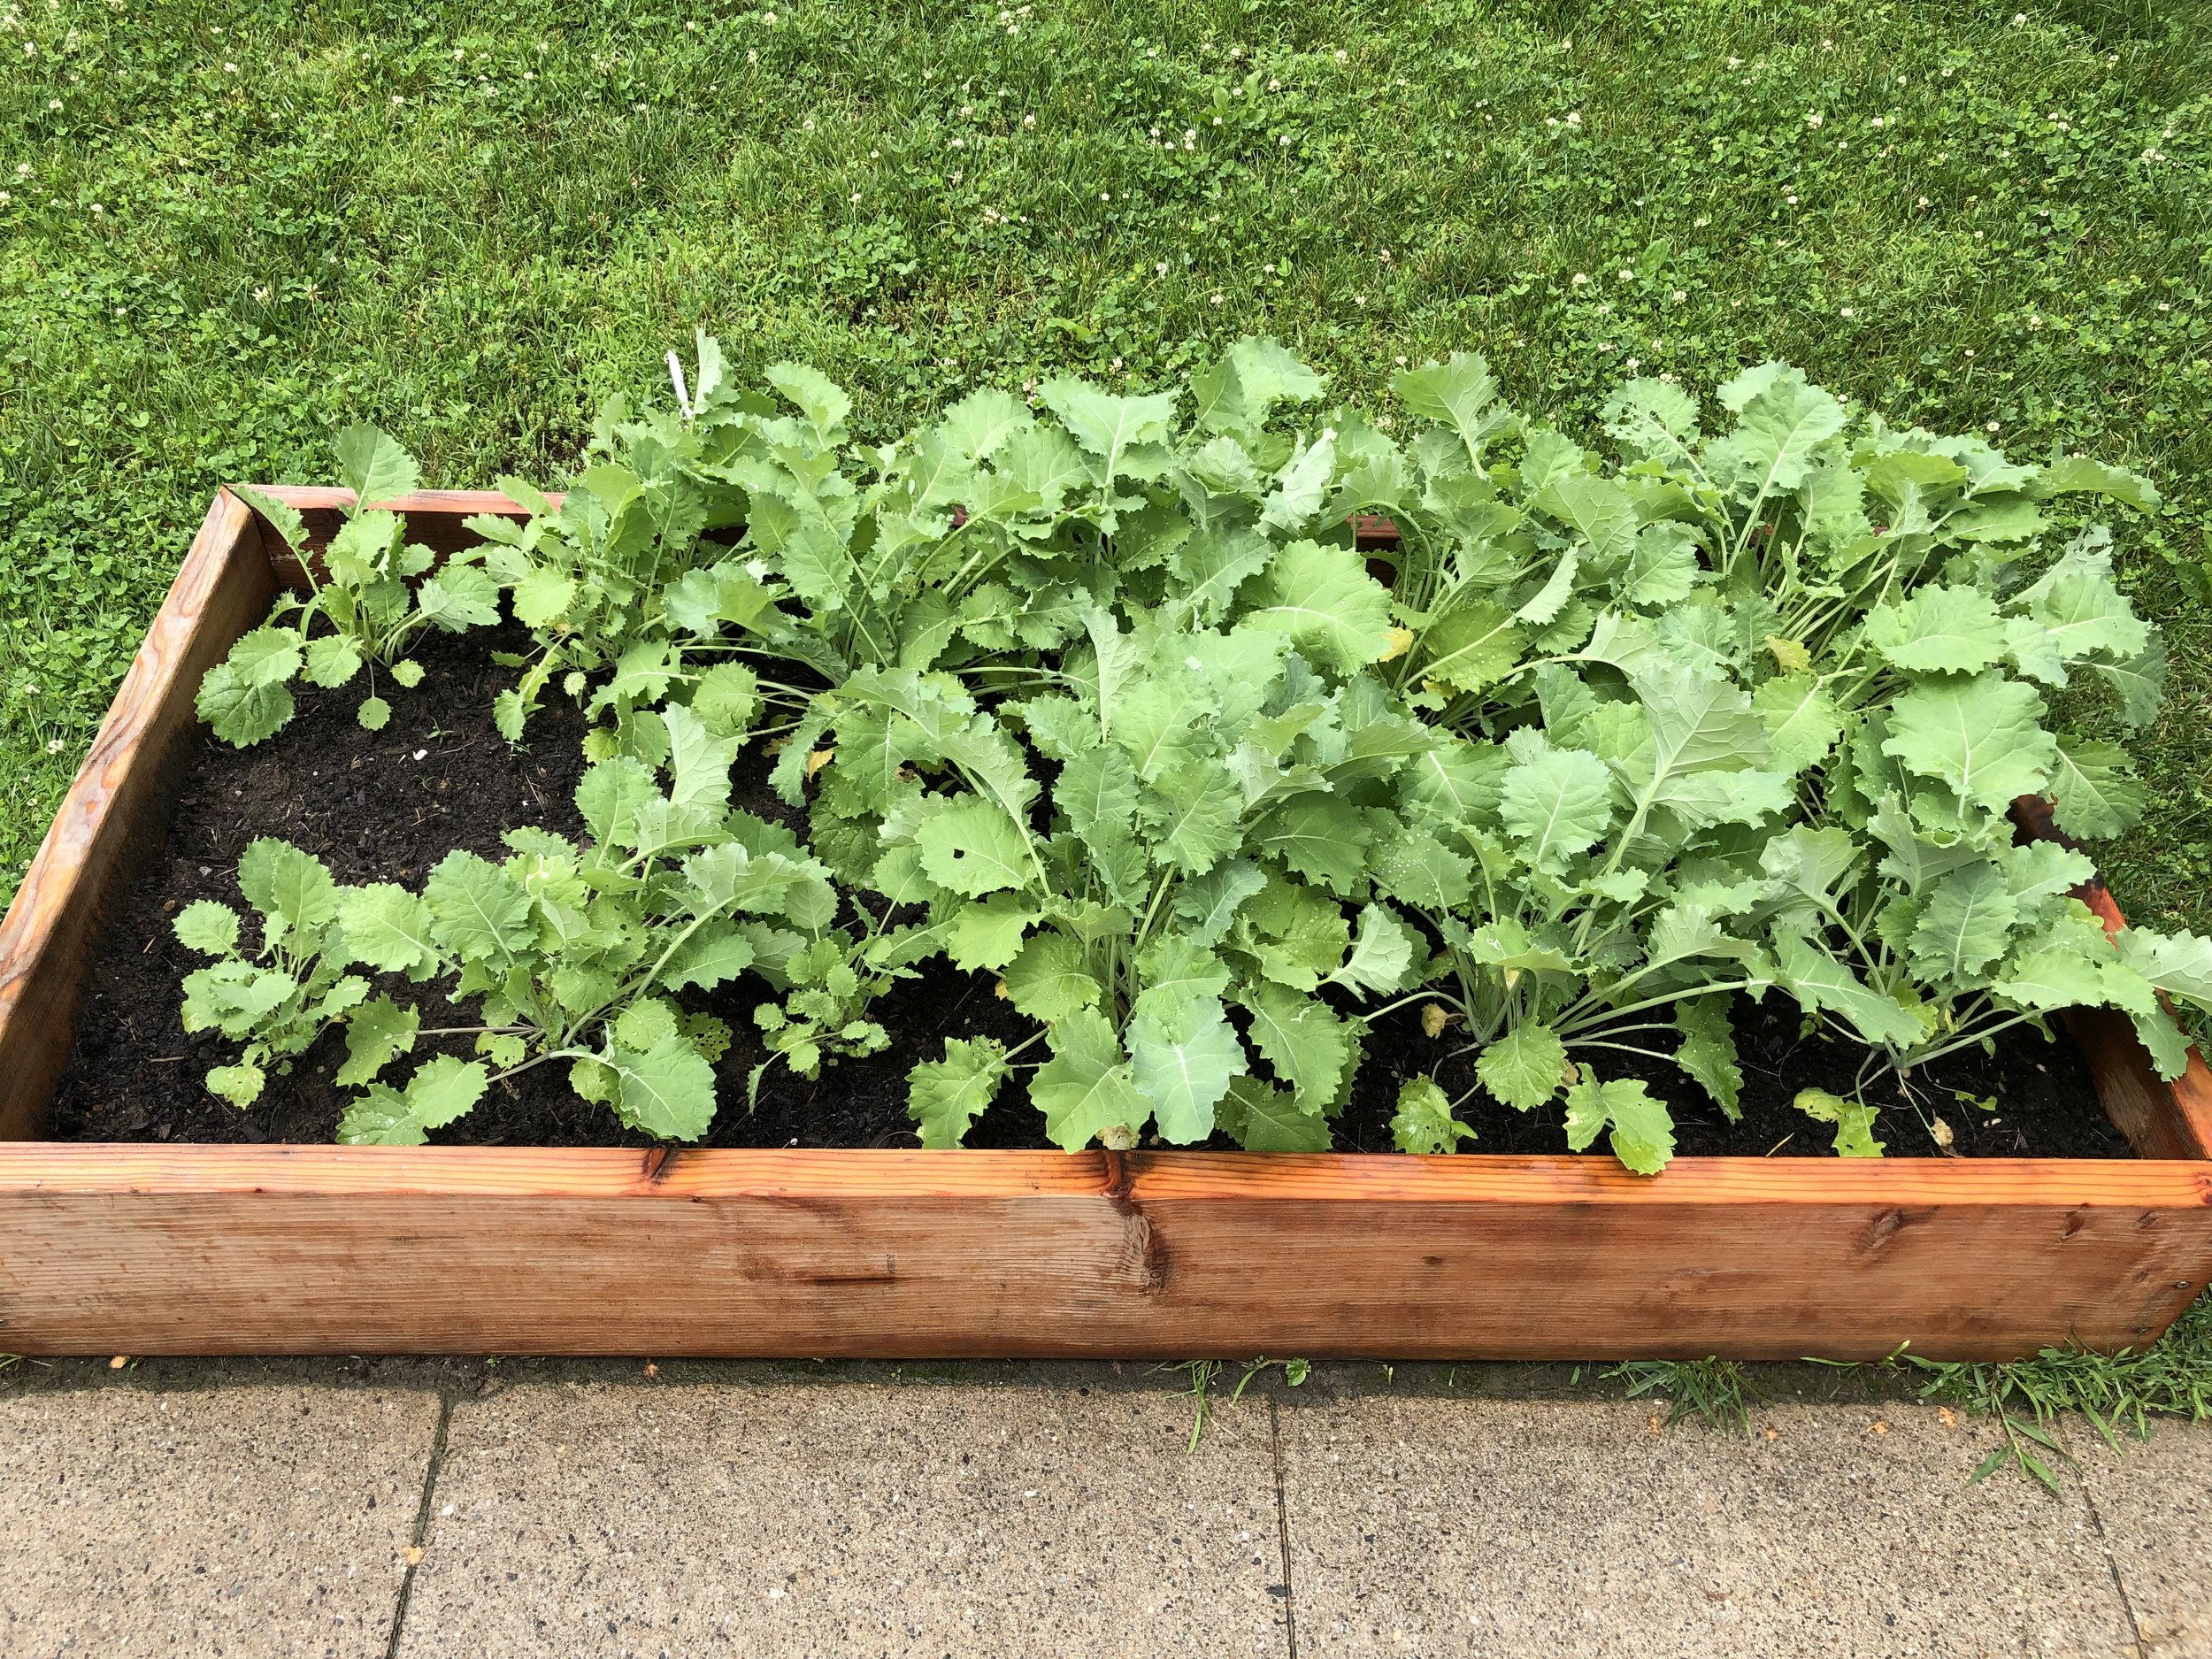 Kale grows happy at the Scarborough Church